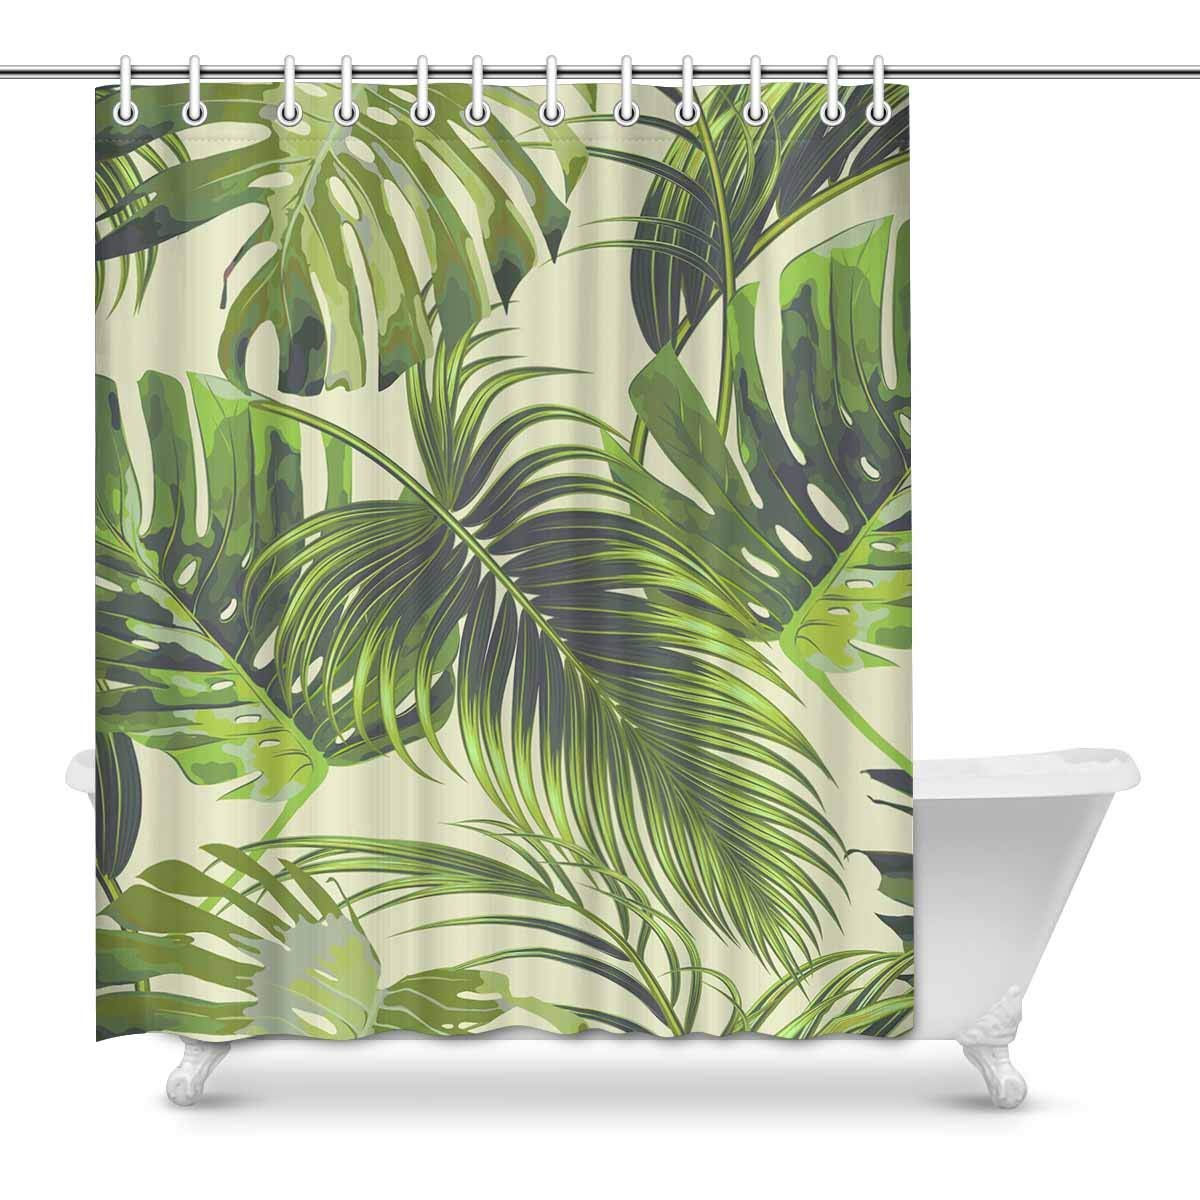 Gckg Tropical Palm Leaves Shower Curtain Jungle Leaf Floral Pattern Polyester Fabric Shower Curtain Bathroom Sets 60x72 Inches